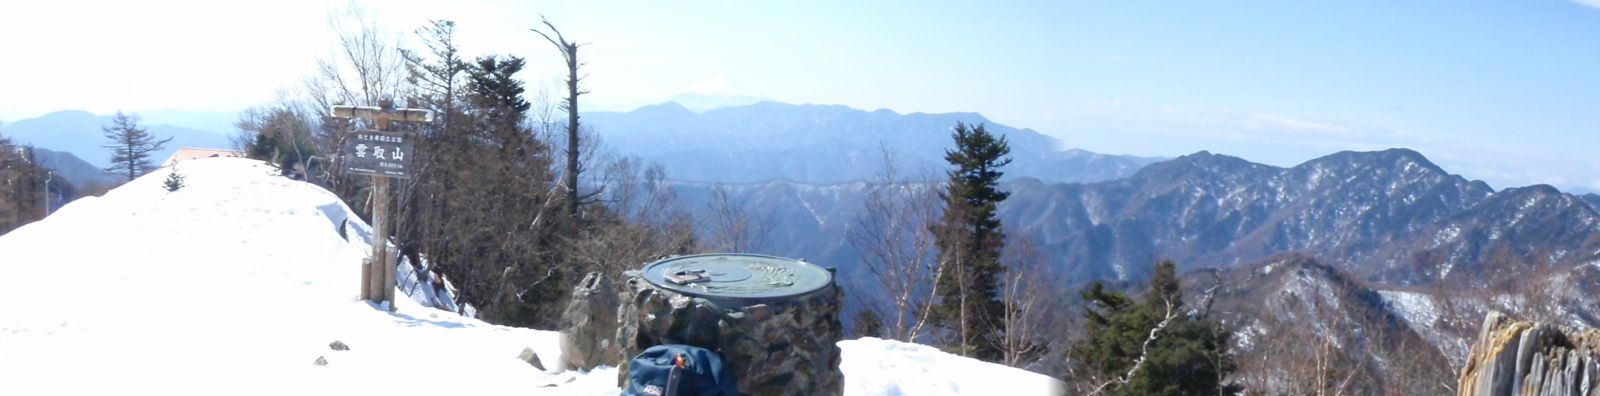 雲取山山頂から奥秩父方面 2011-02-27 - the Panaorama View from Kumotoriyama - panoramio.jpg